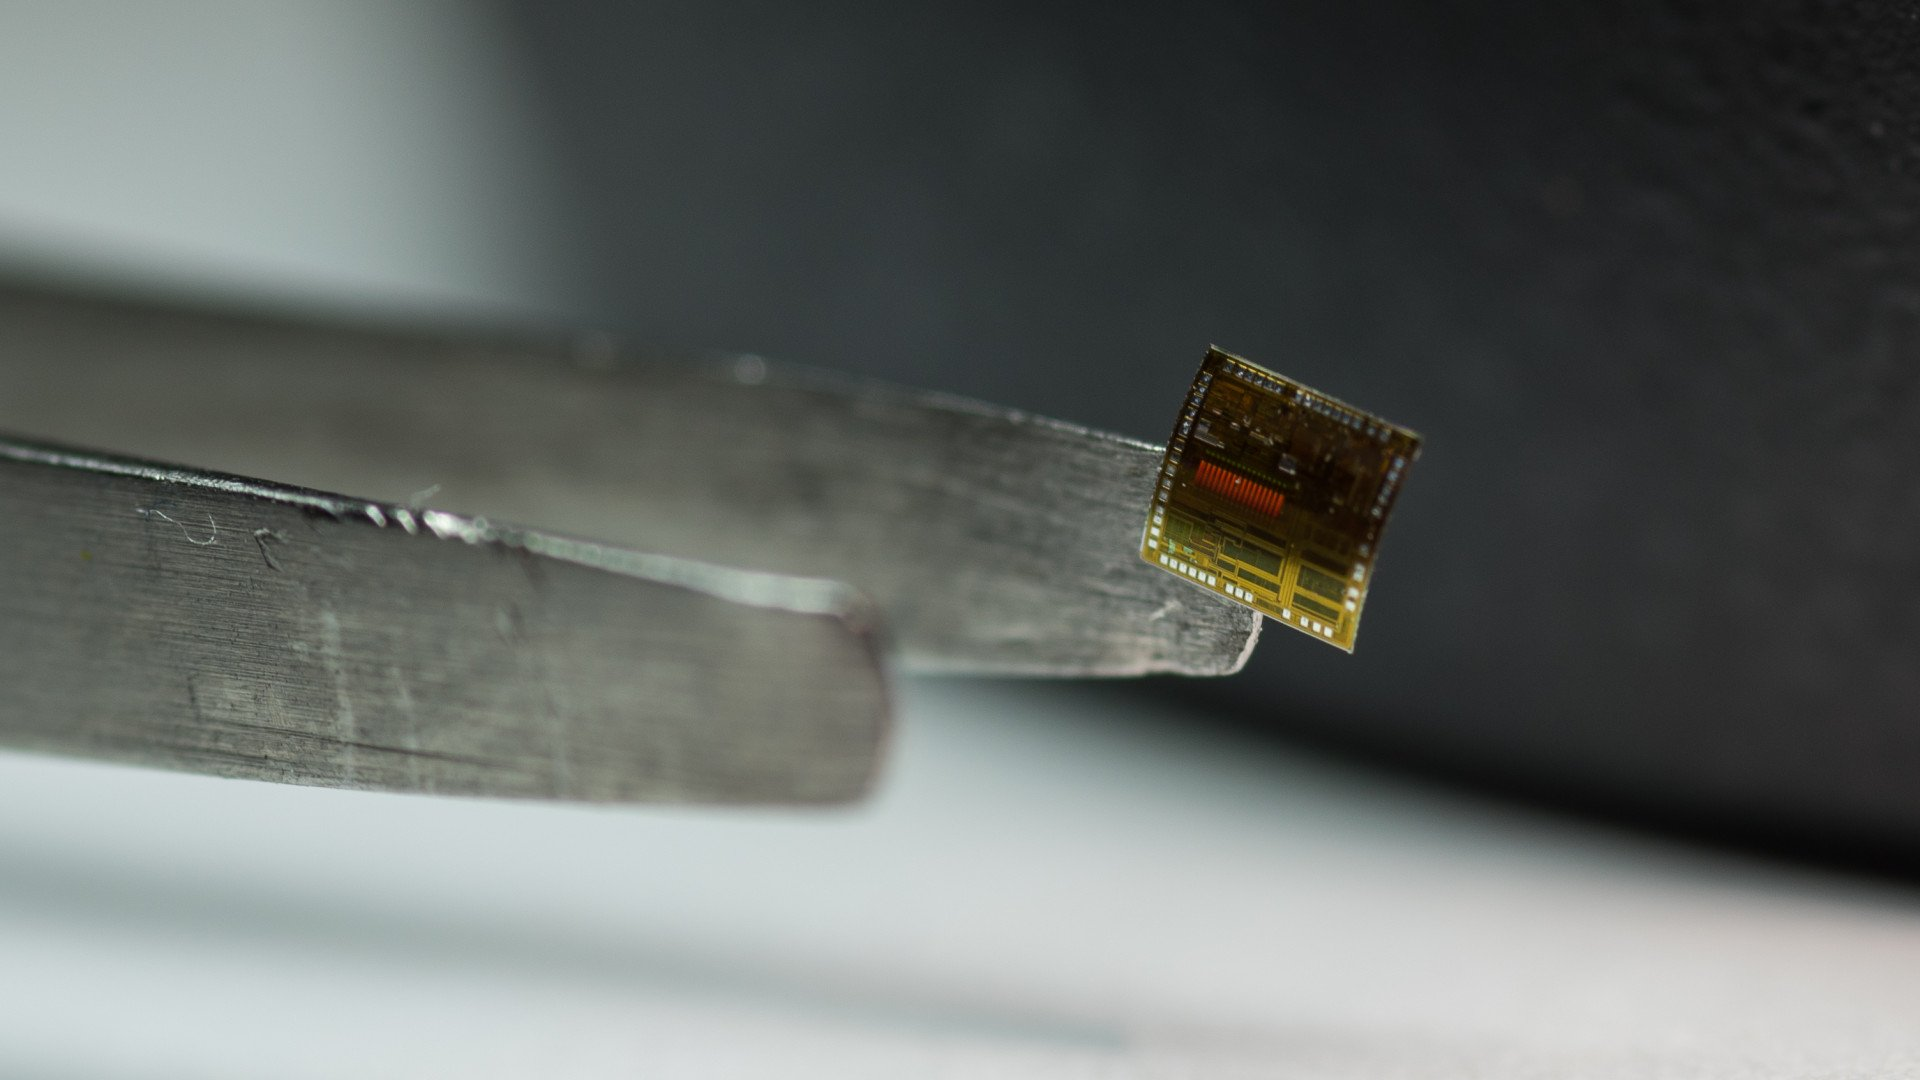 New Flexible Silicon-on-Polymer Super Memory Chip Created with 3D Printing | All3DP